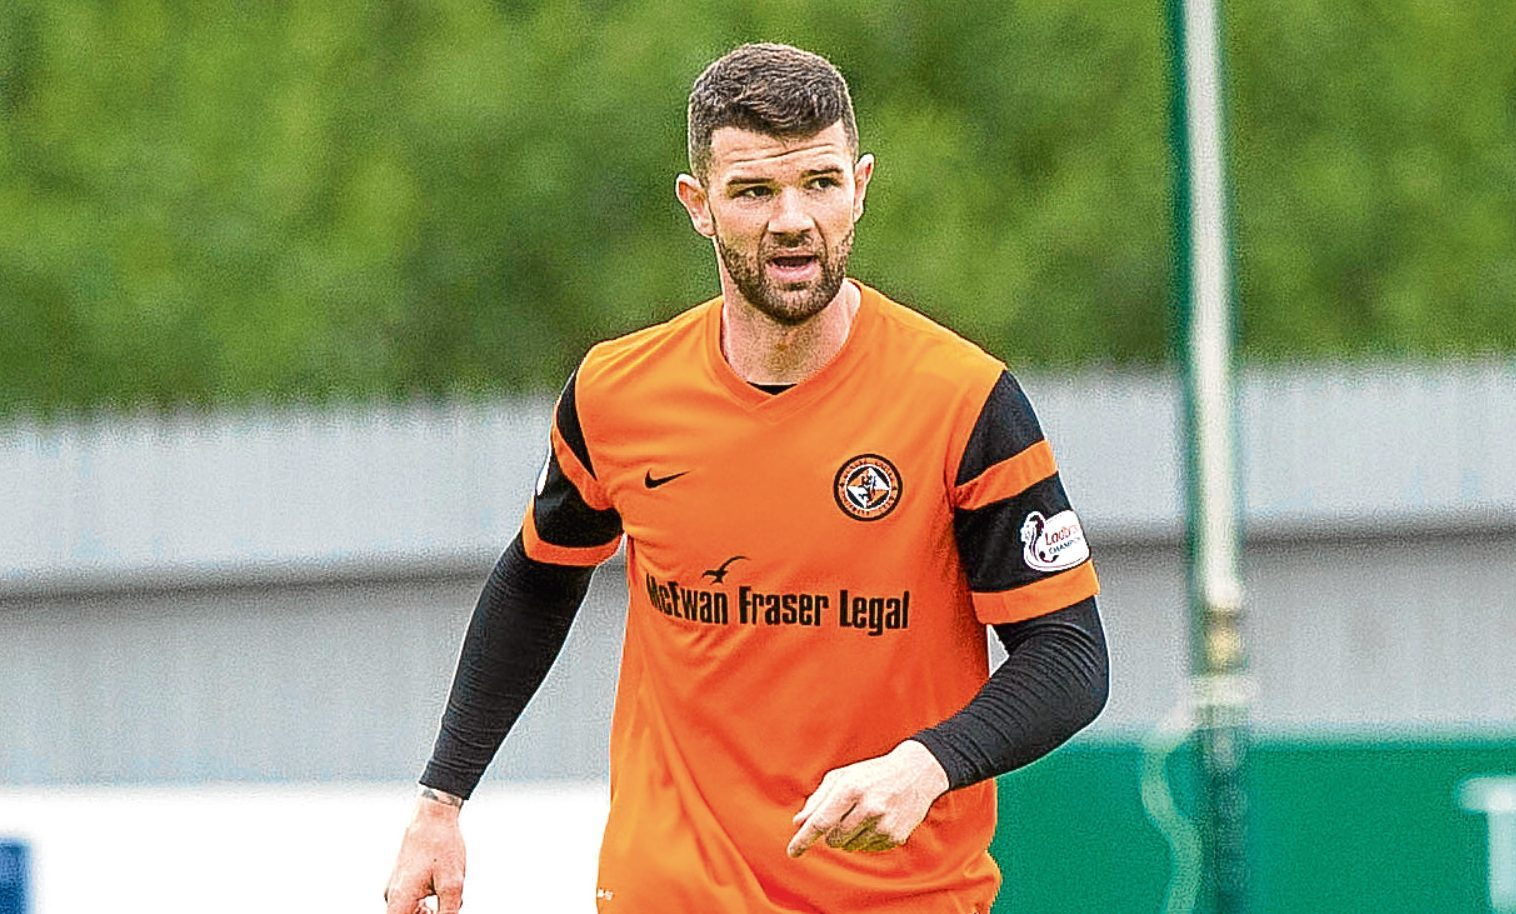 Dundee United defender Mark Durnan reckons the Tangerines will need to be on their guard in Paisley.